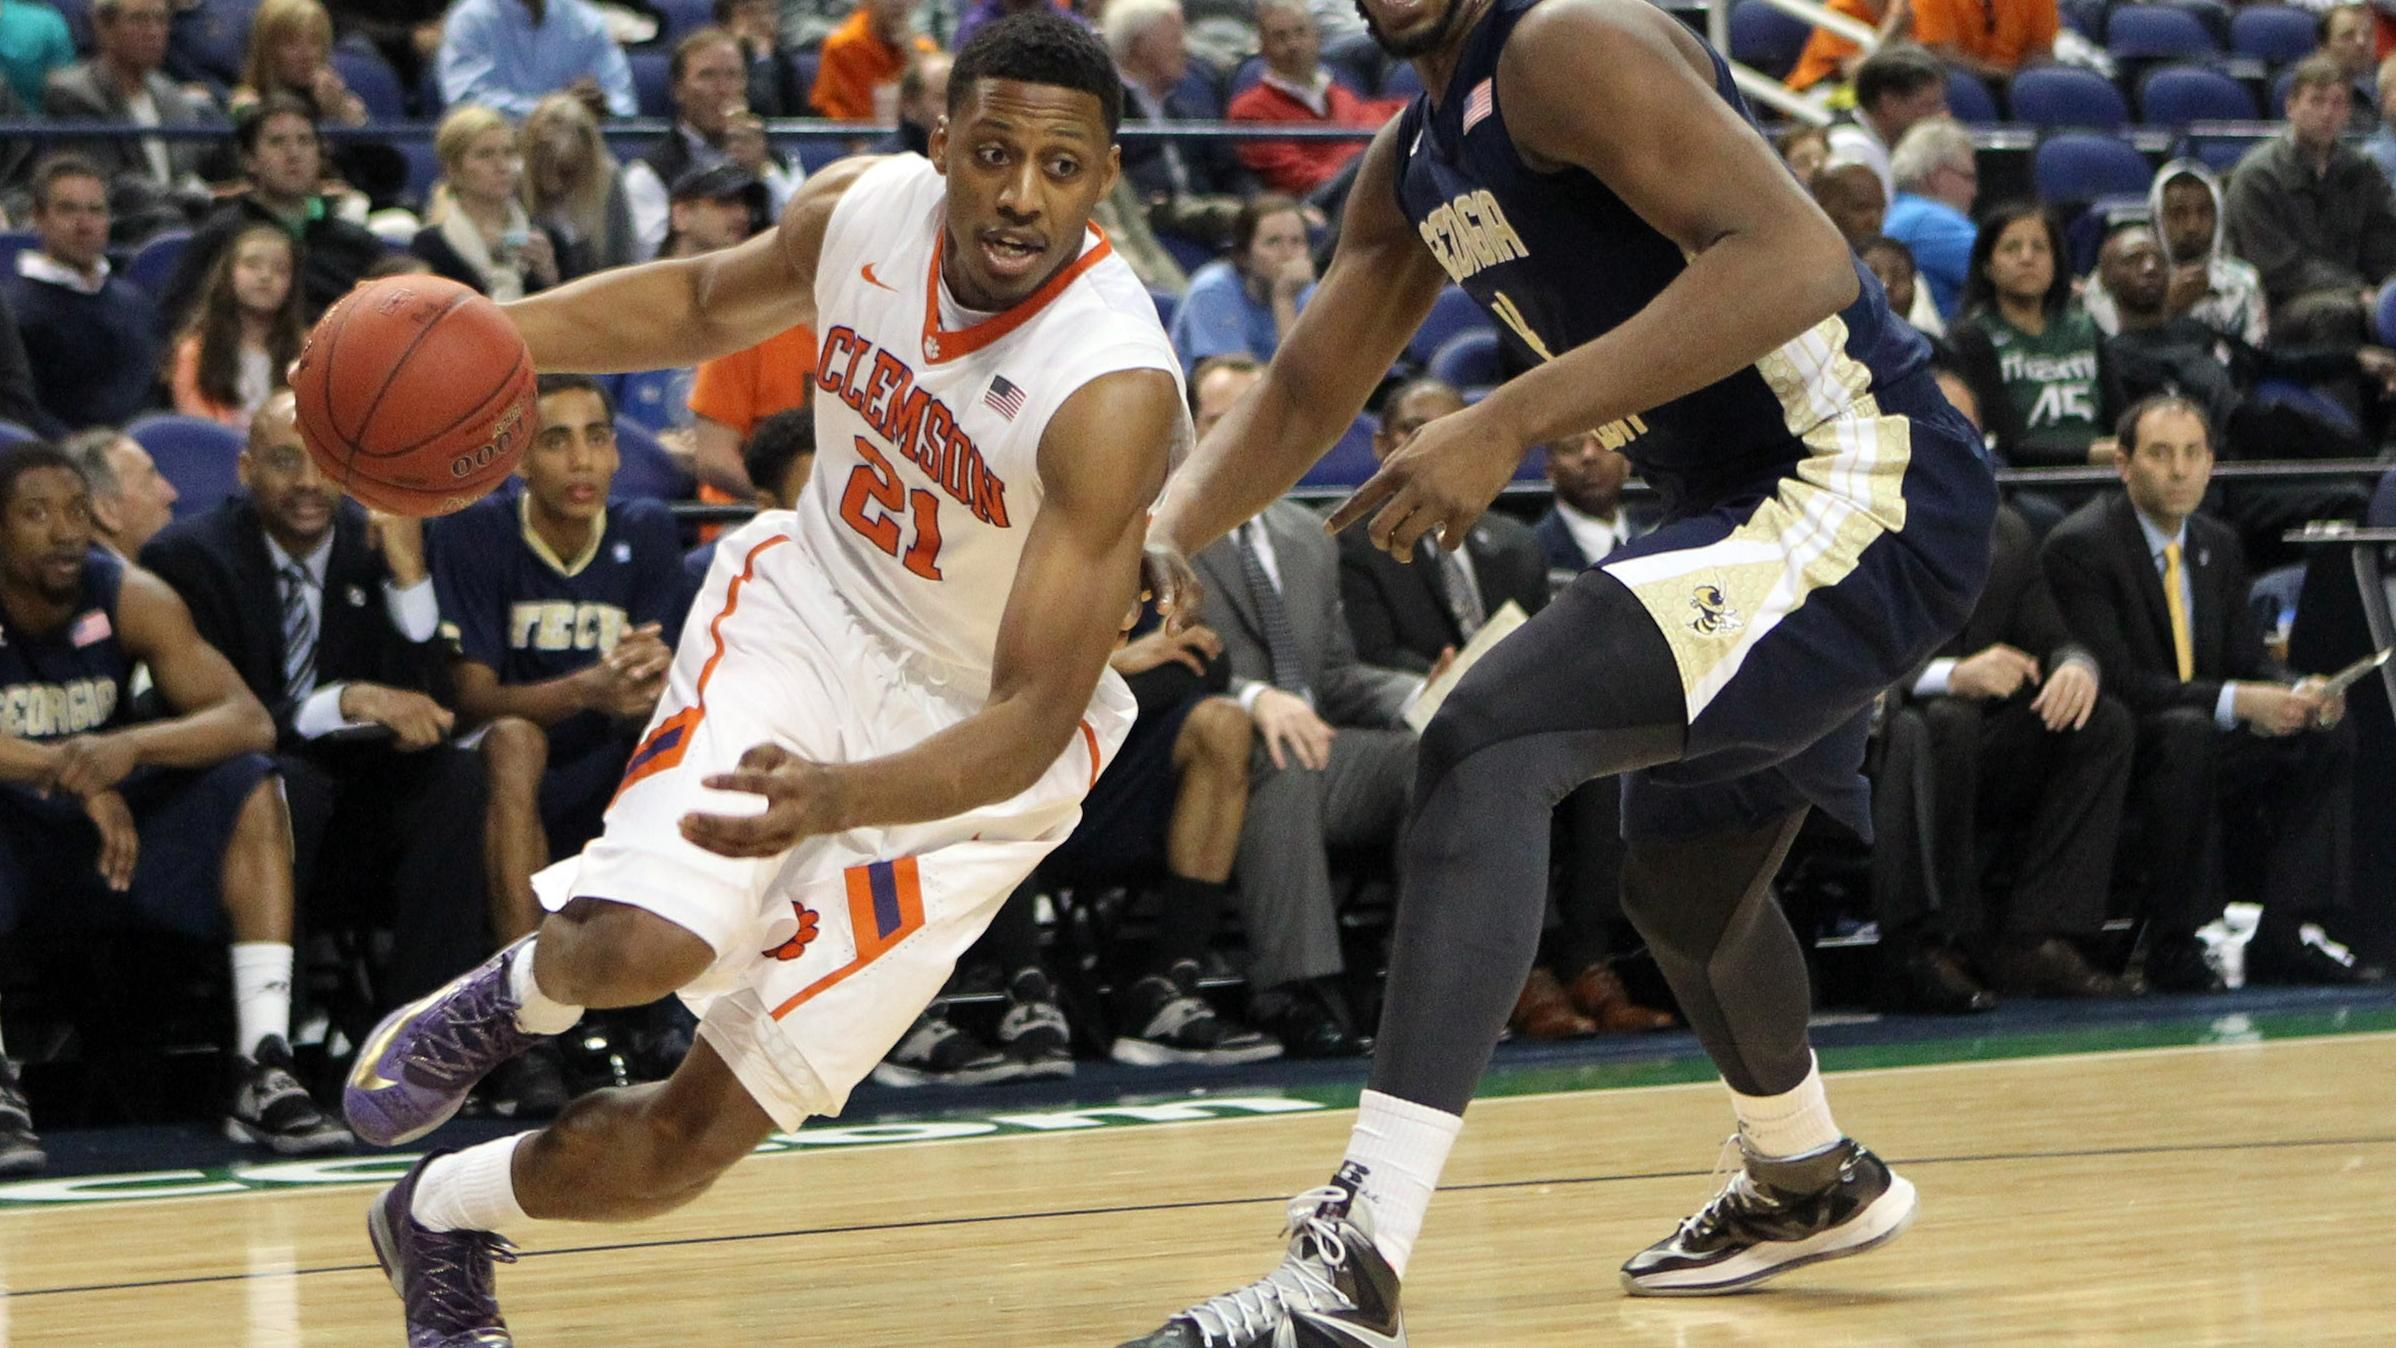 FEATURE: Tigers ?survive and advance' in overtime thriller with Tech